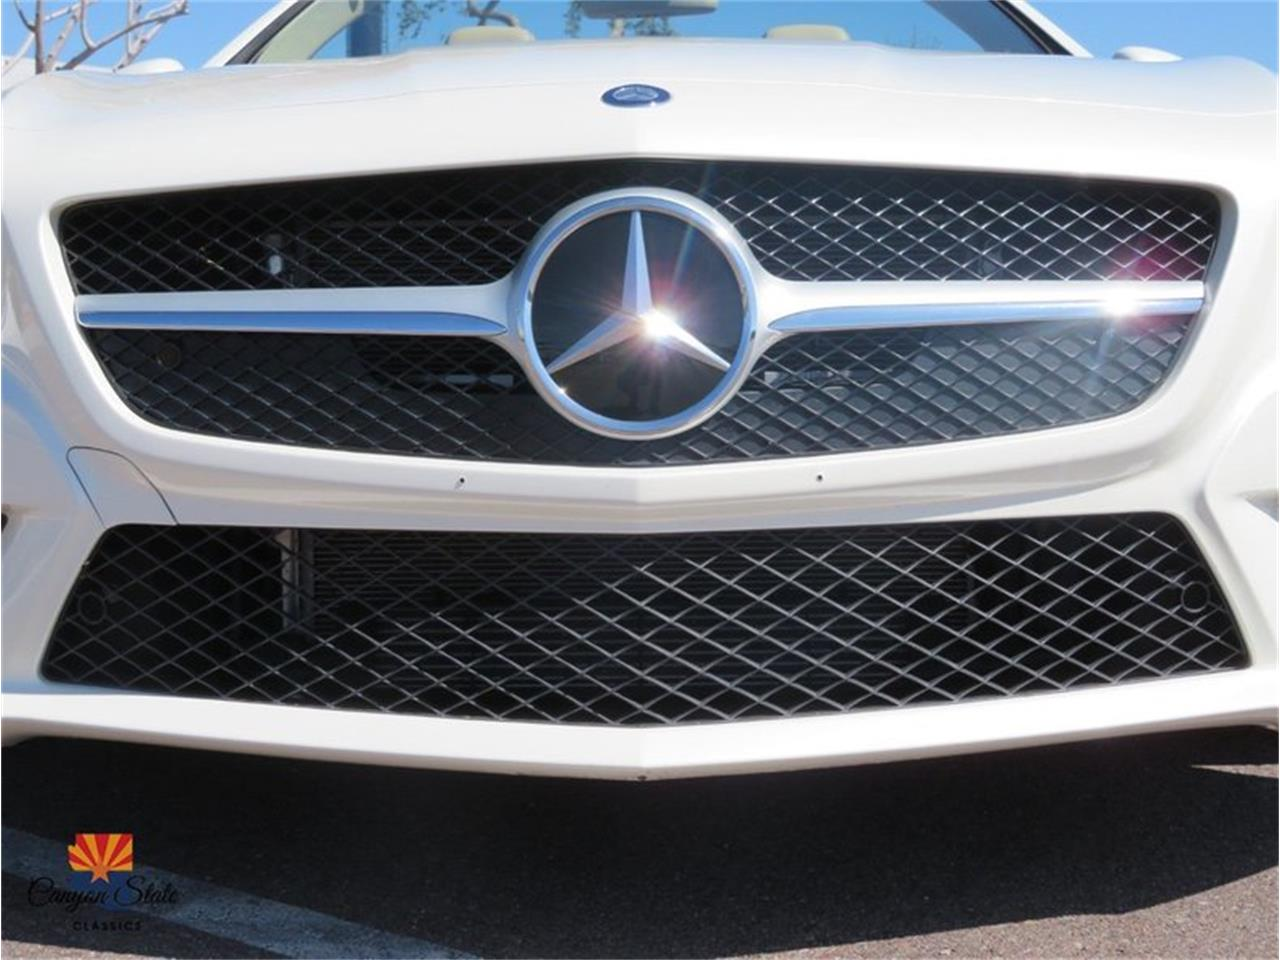 2013 Mercedes-Benz SL-Class for sale in Tempe, AZ – photo 36